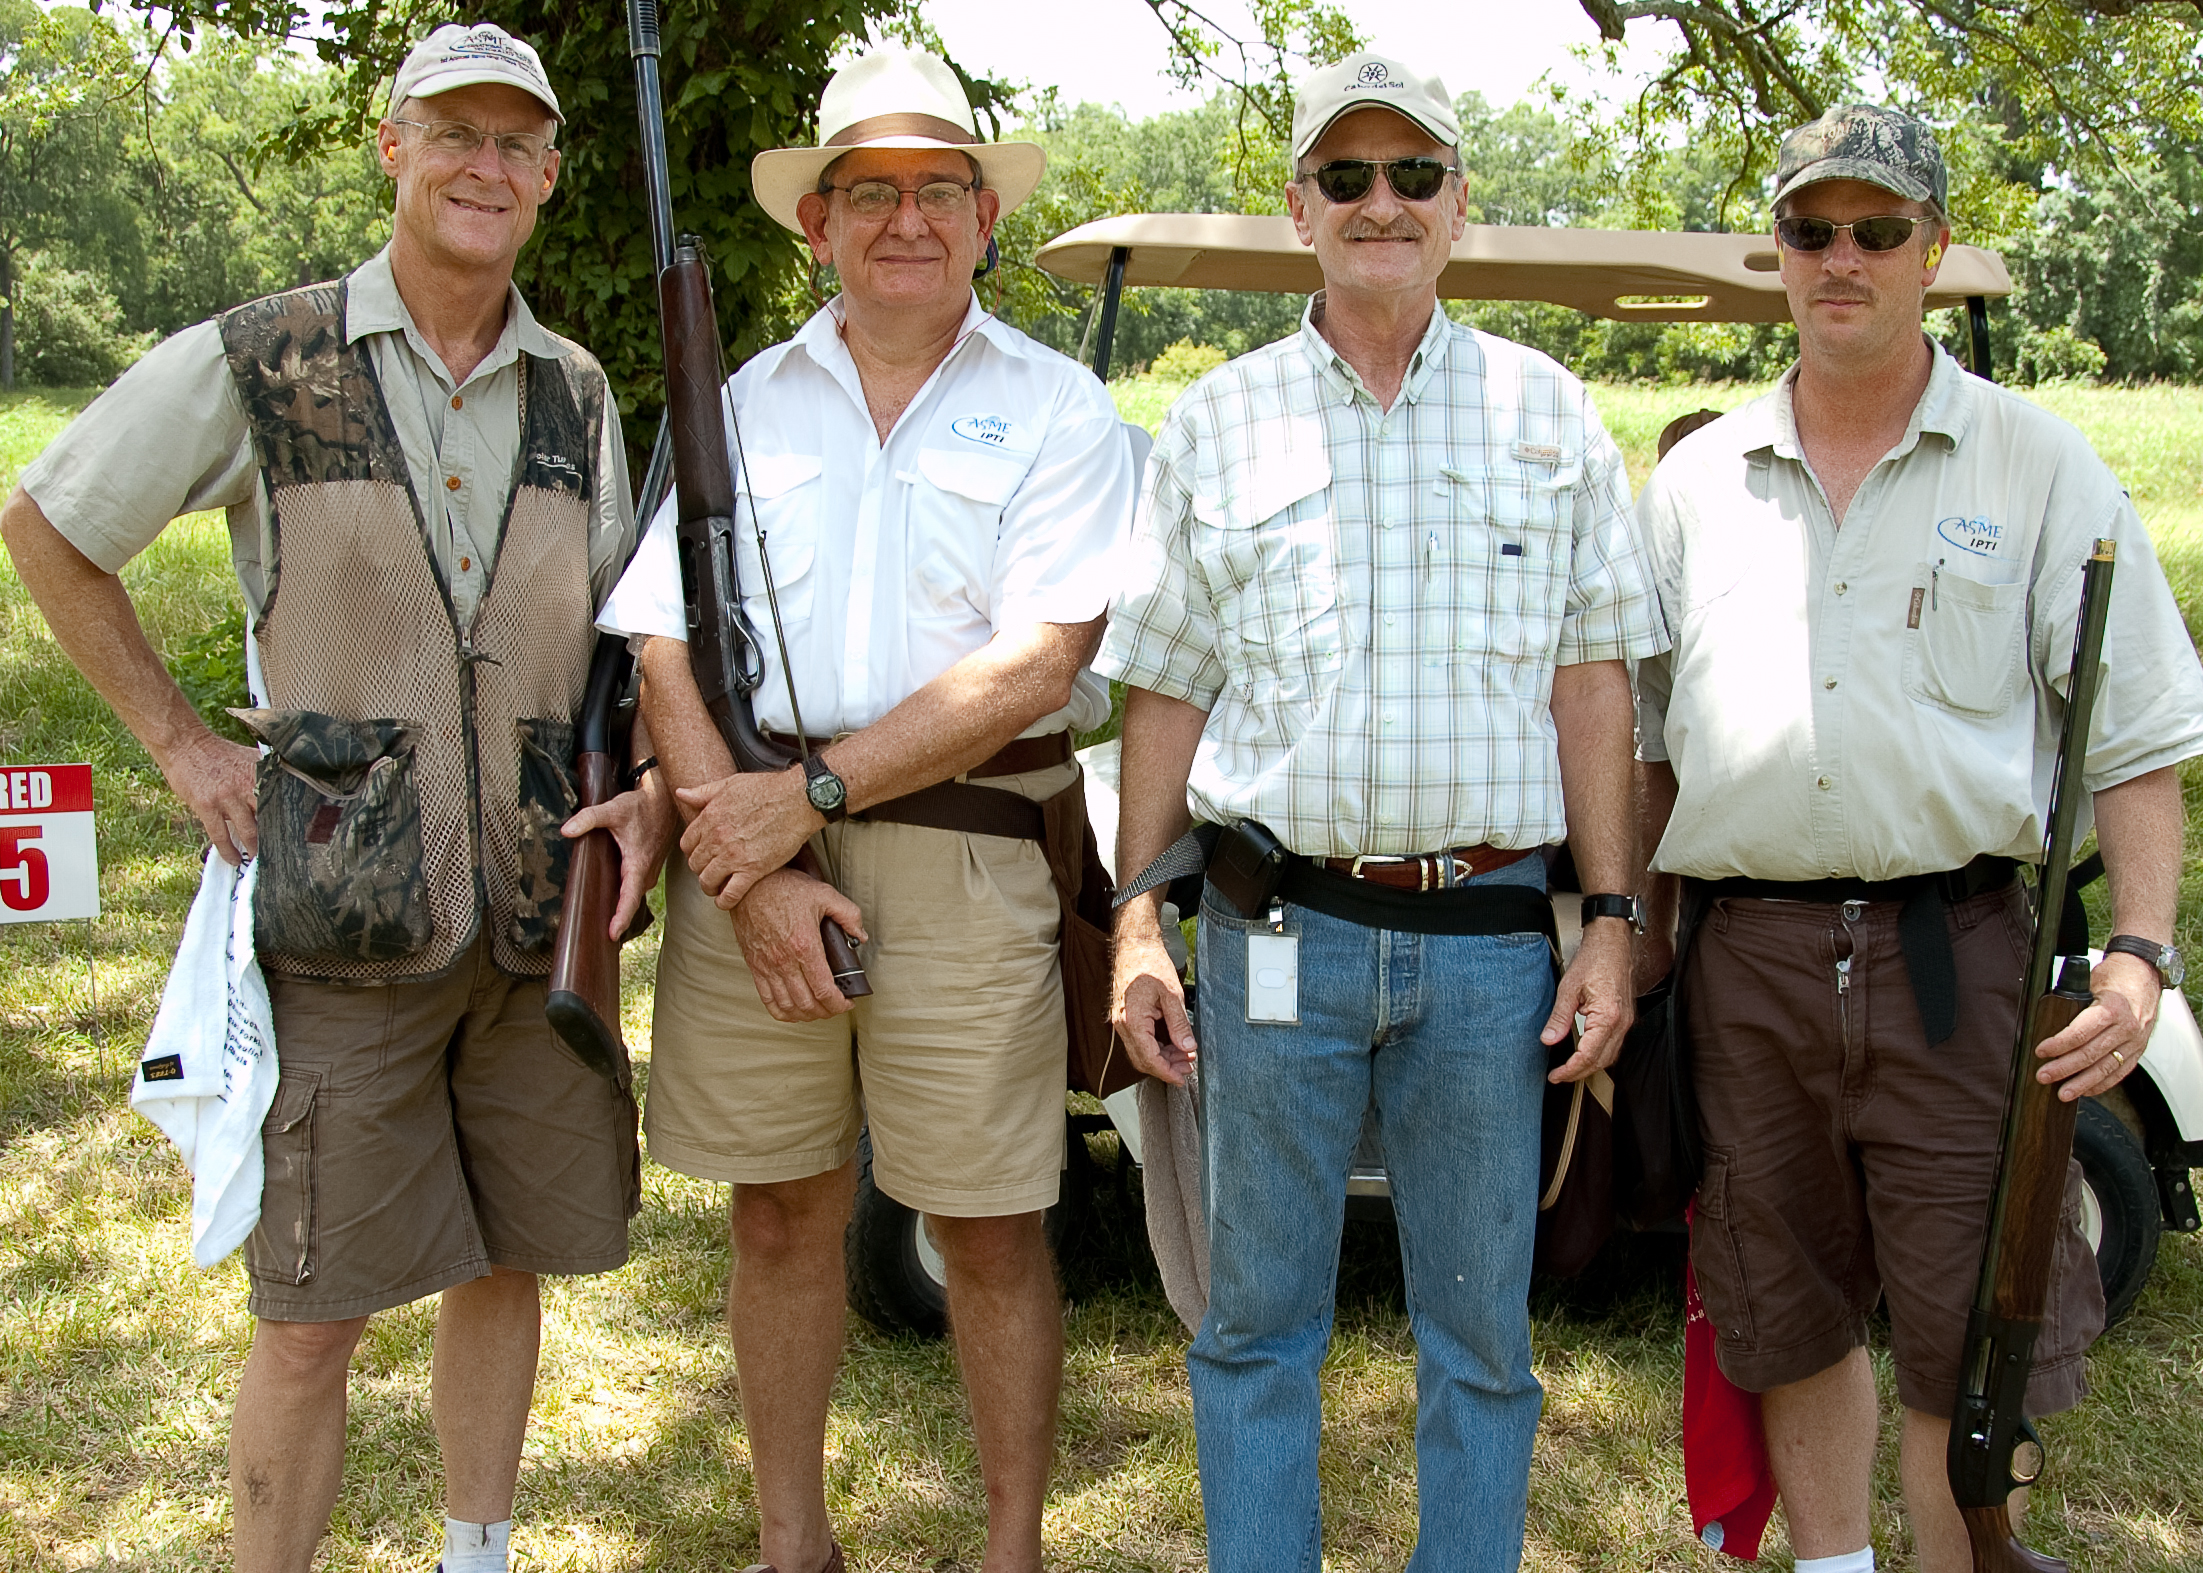 Sporting Clays Tournament